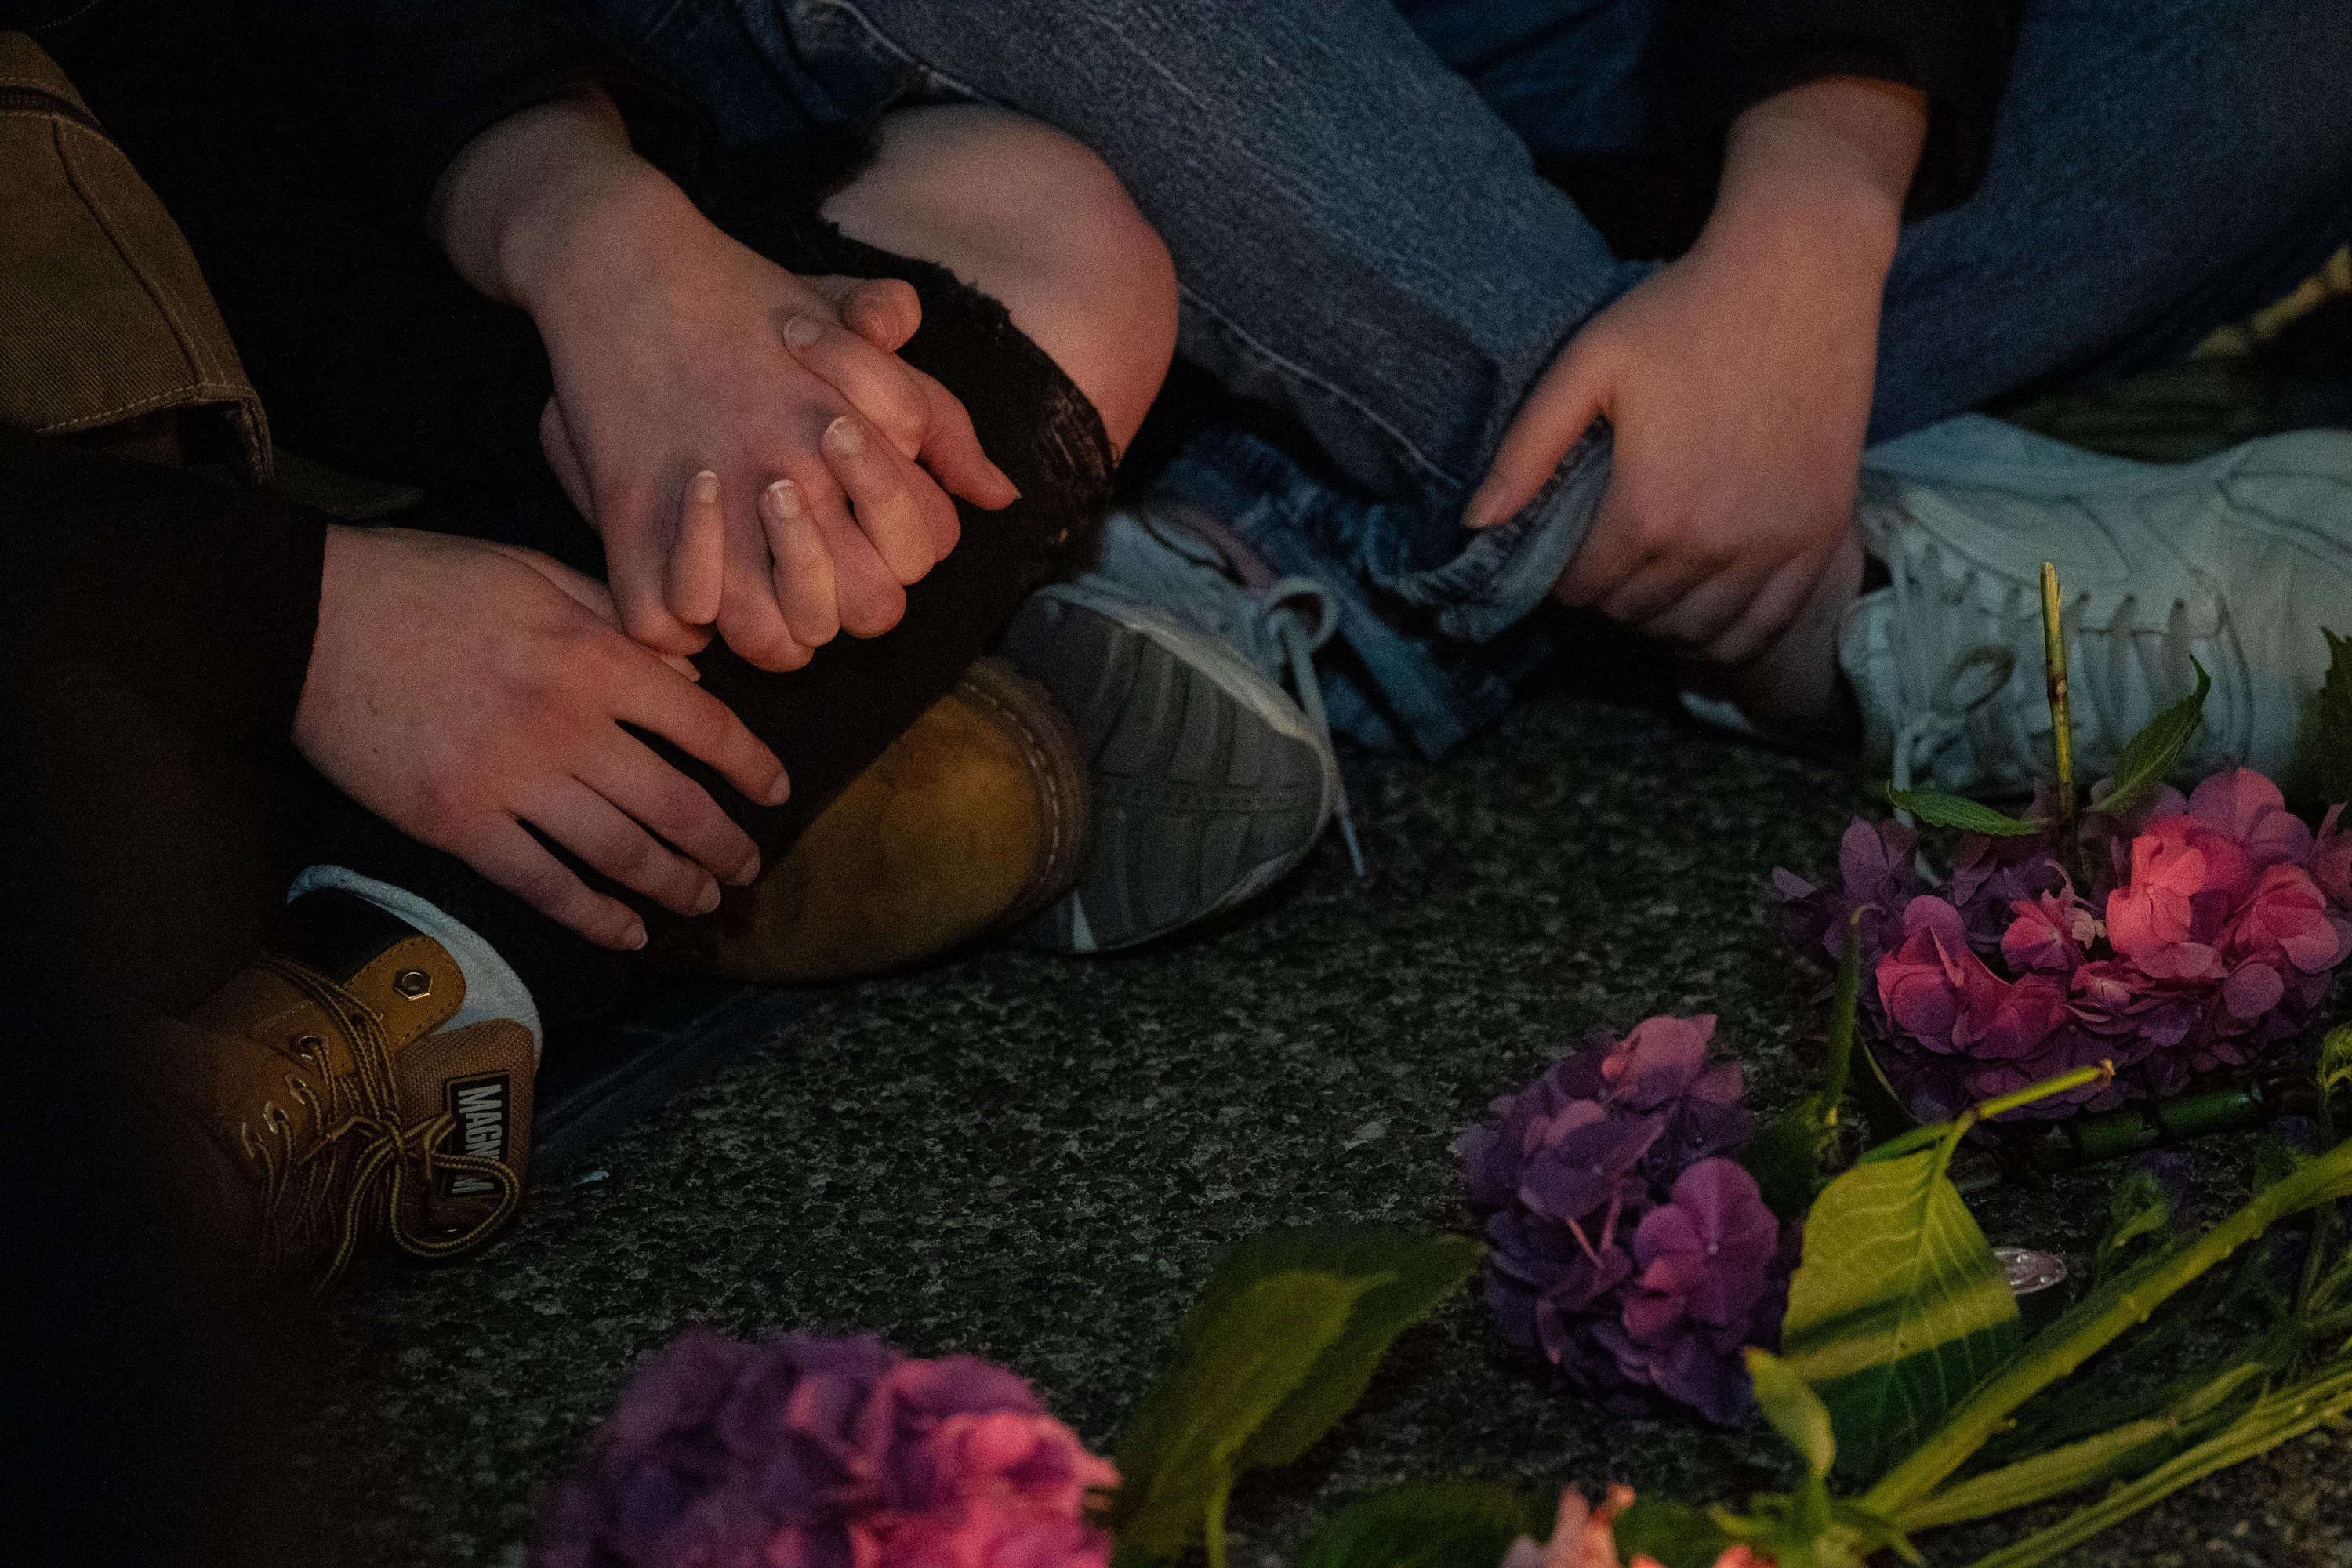 People sitting on the ground hold hands in front of flowers